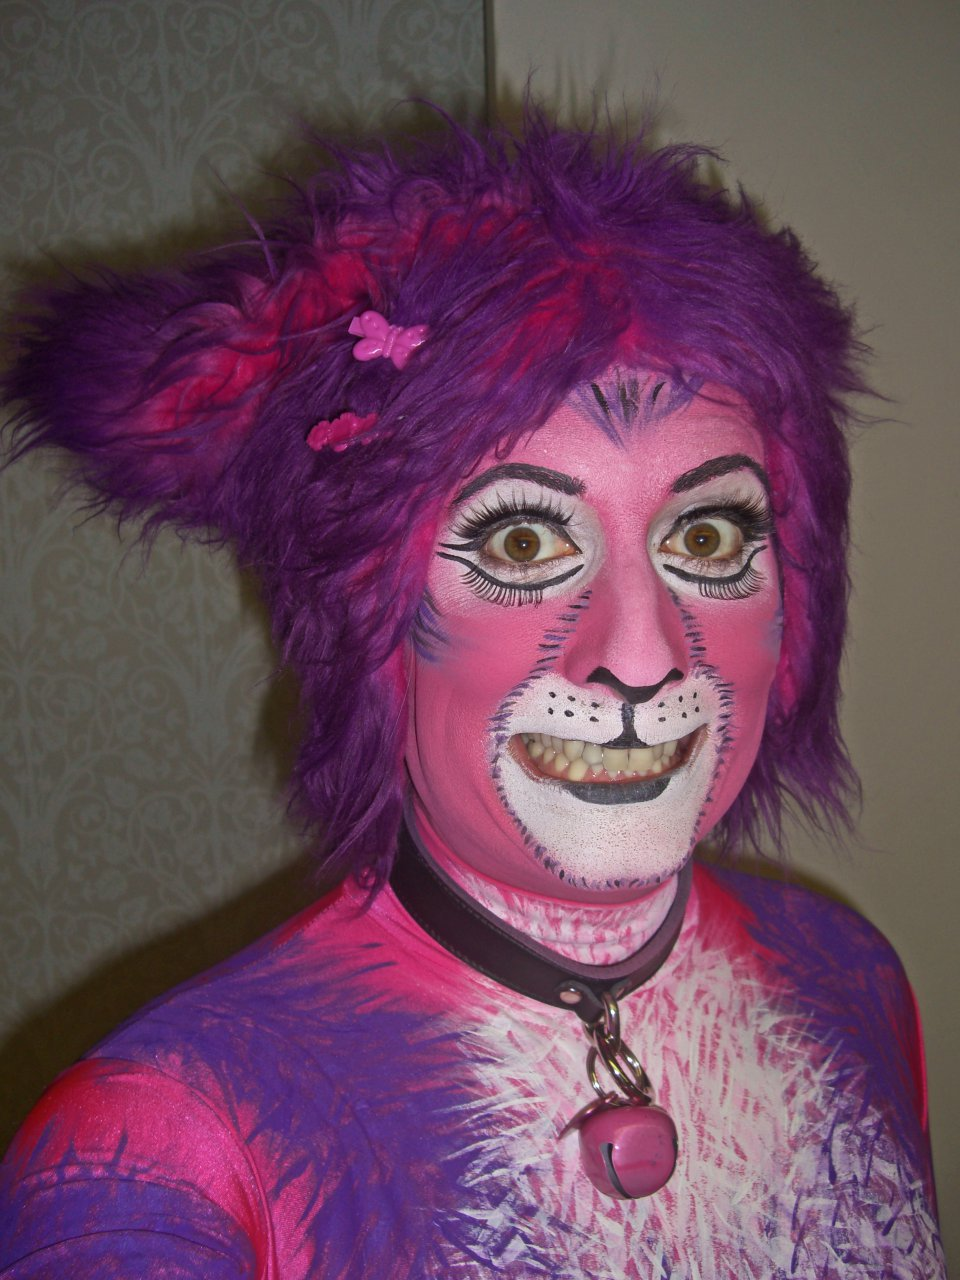 Cheshire Cat 2.0 makeup for Furnal Equinox 3/17/2012